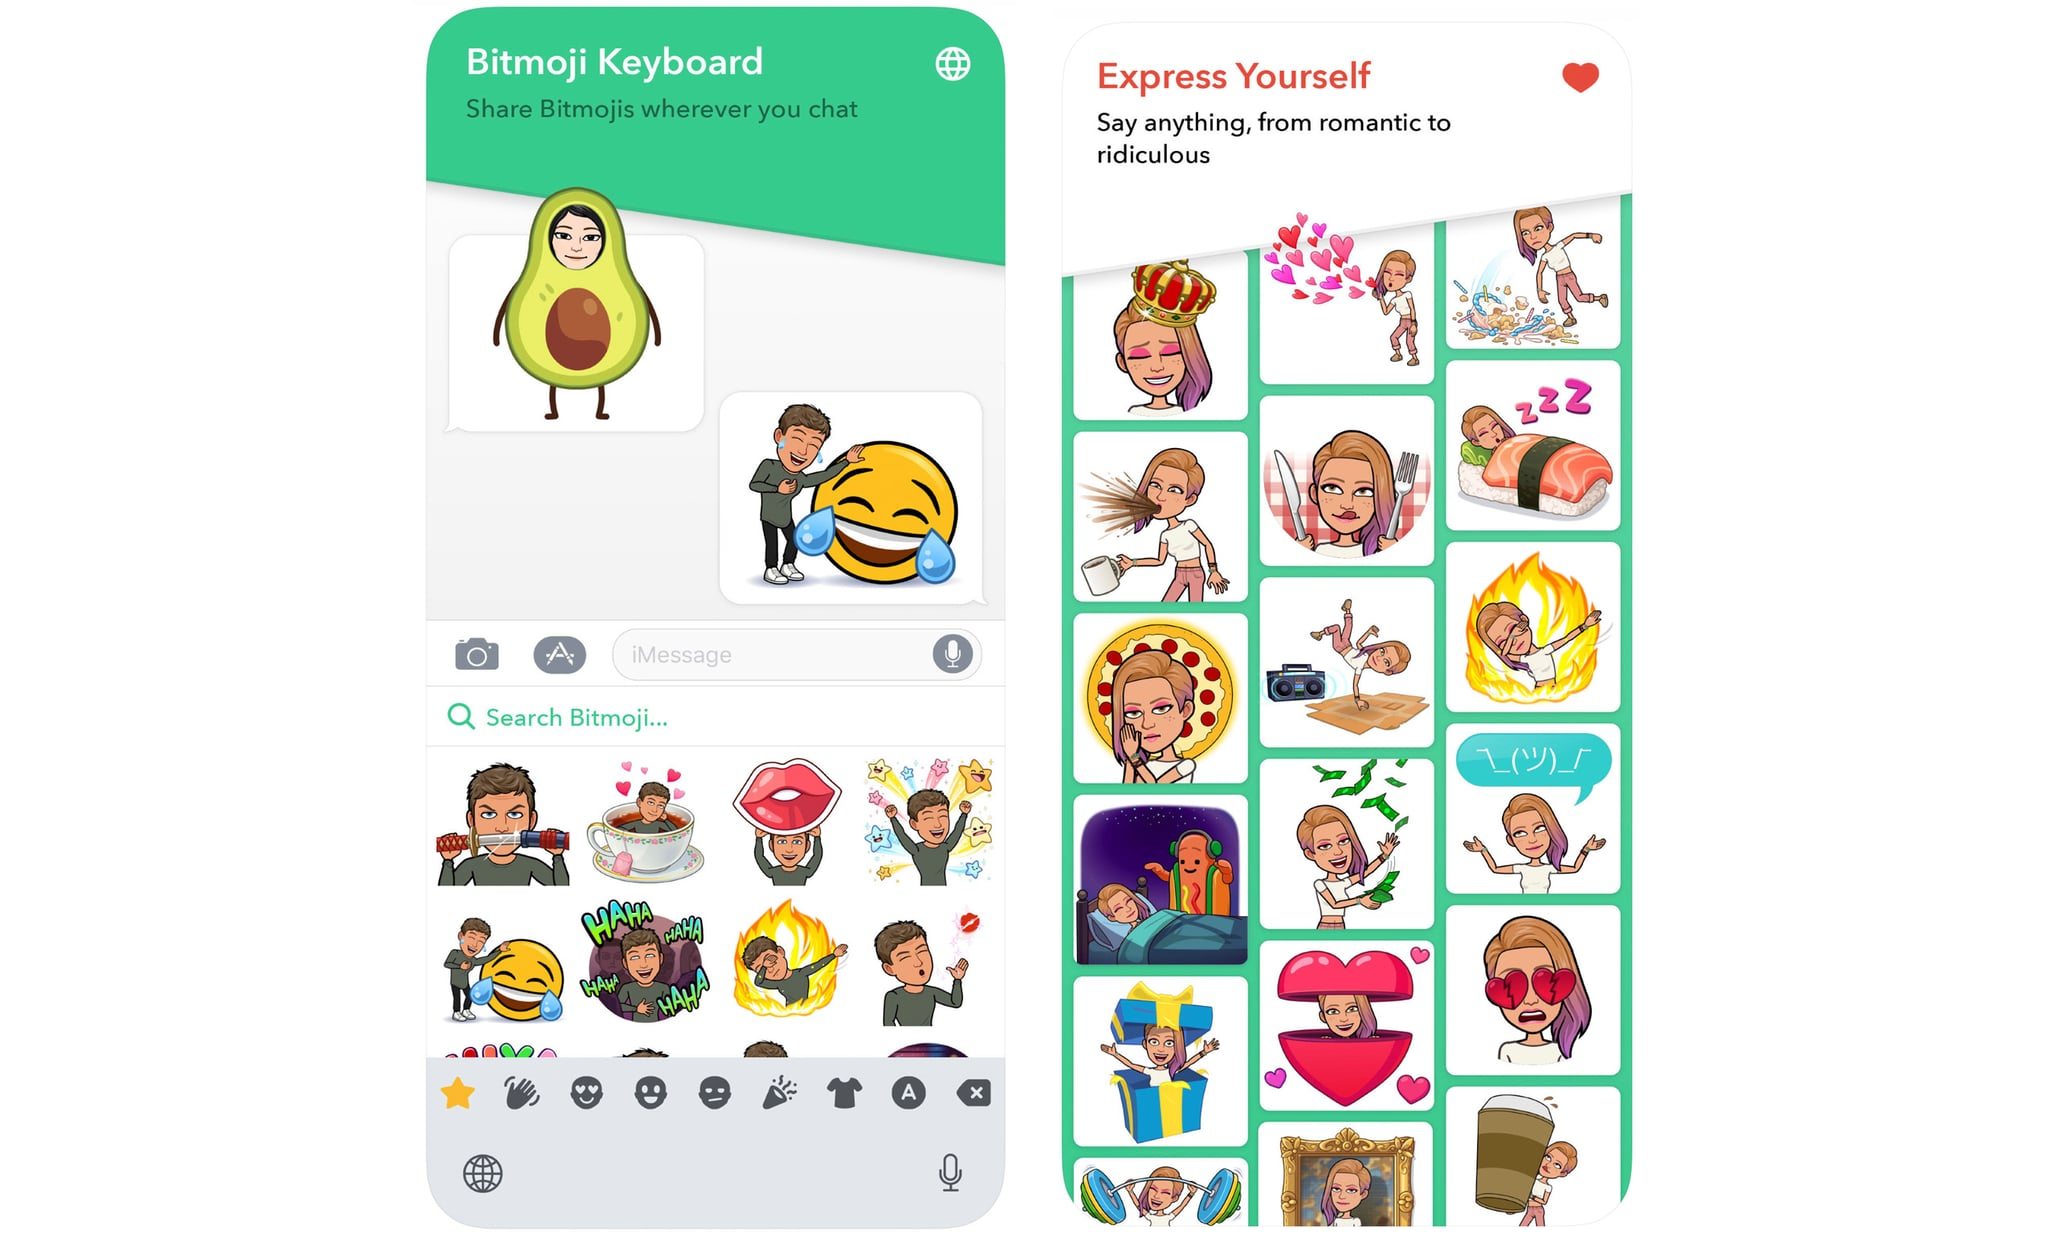 Bitmoji   Here Are the Top iPhone Apps of 2018 — How Many Do